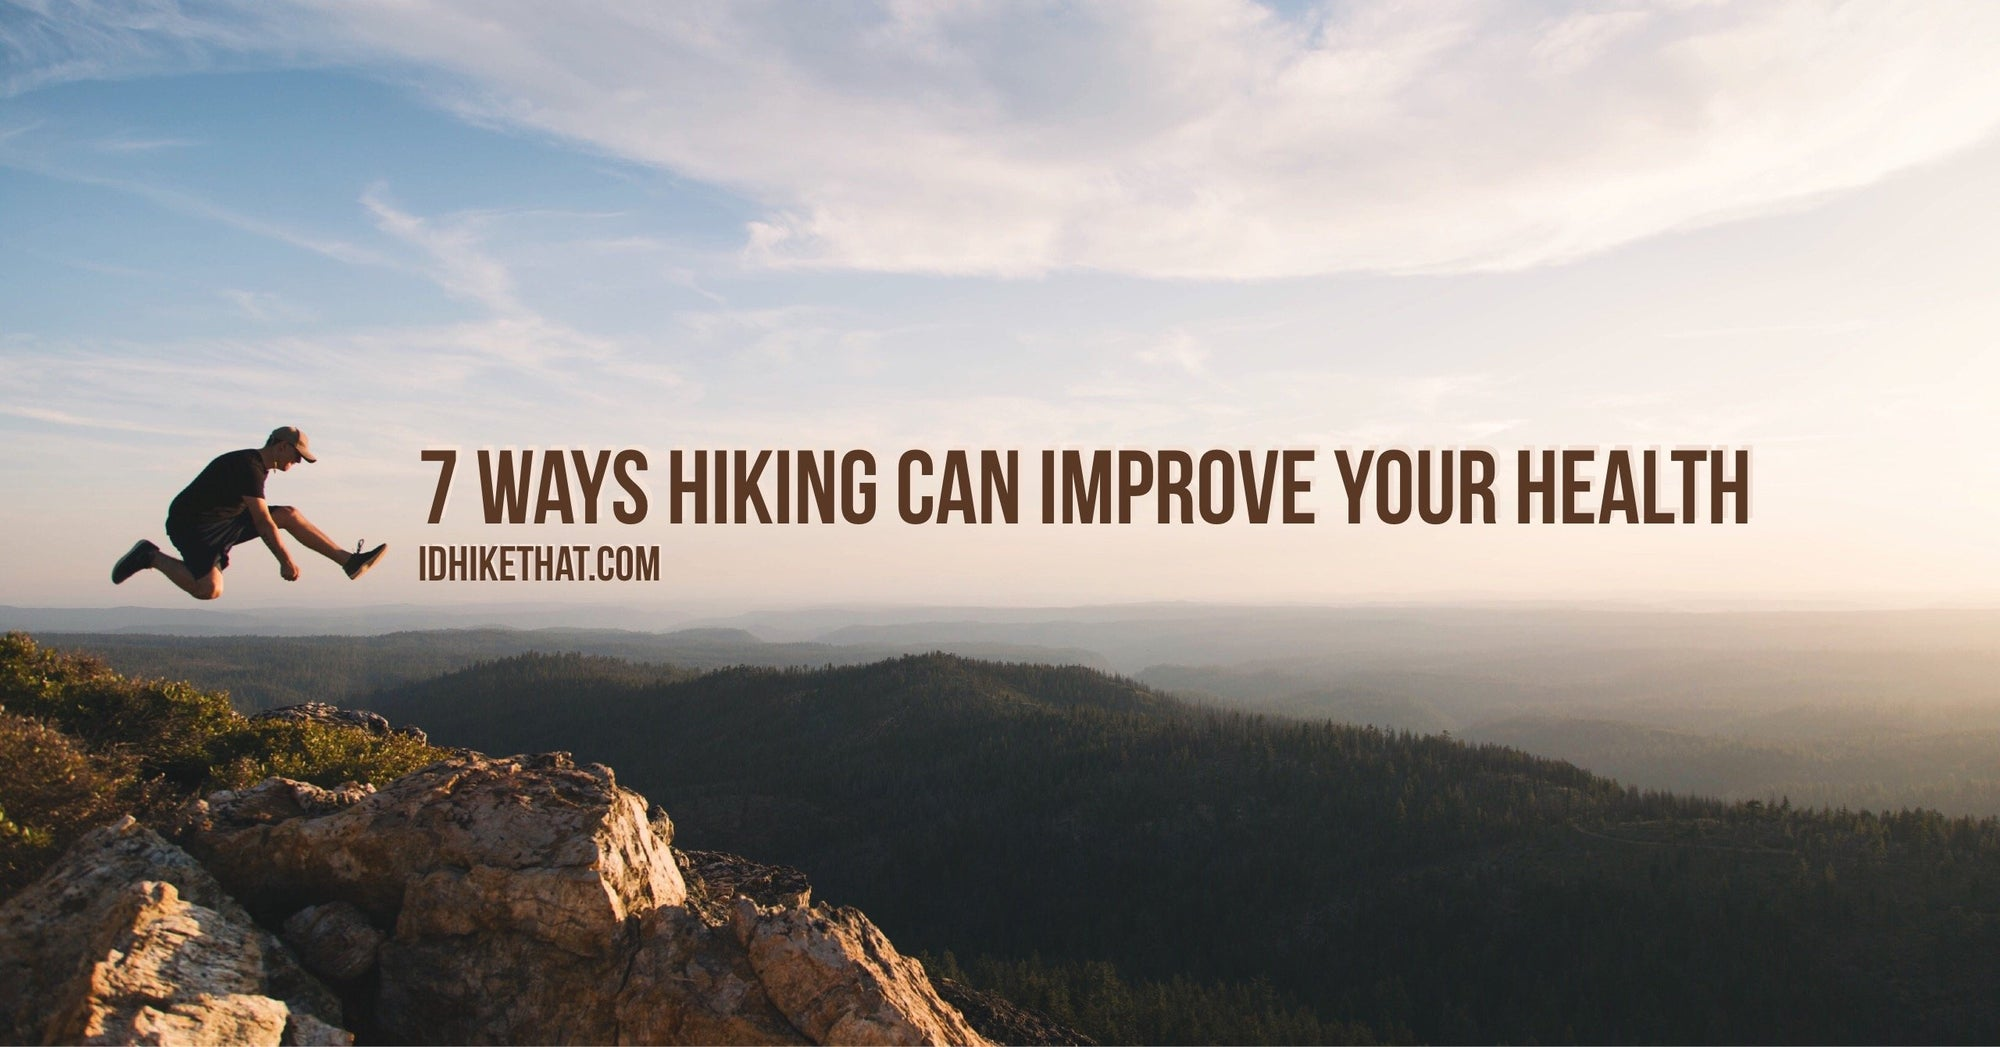 7 ways hiking can improve your health. Visit idhikethat.com to find out how hiking is more than just a fun outdoor activity.